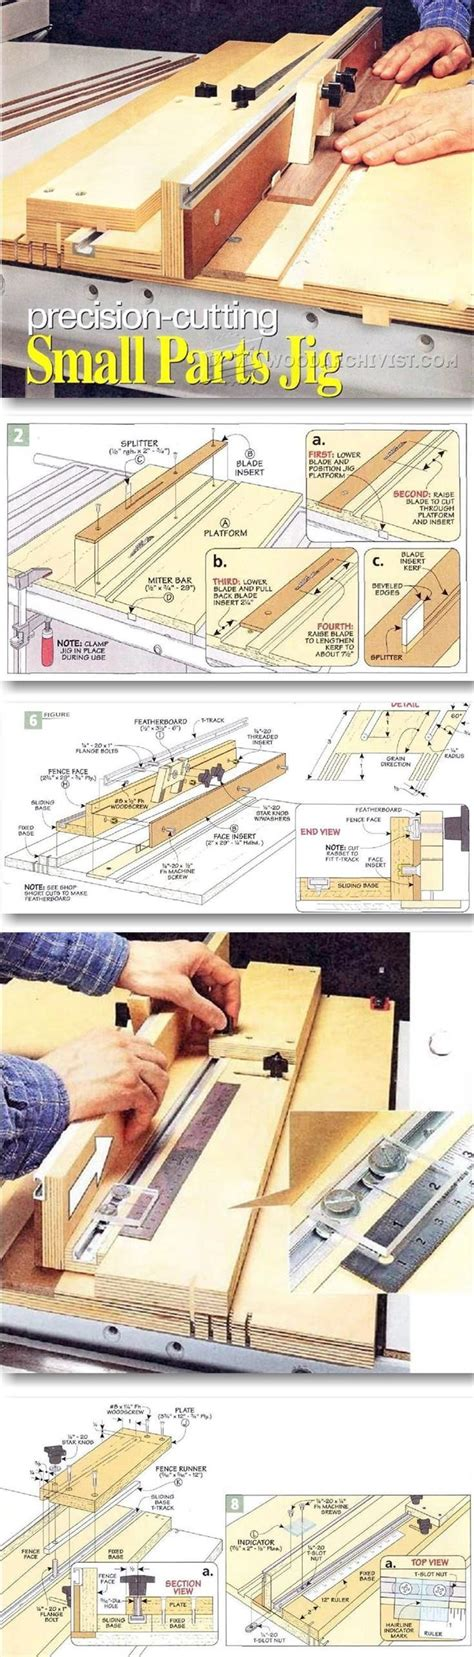 table saw cutting techniques 779 best images about woodworking jigs on pinterest